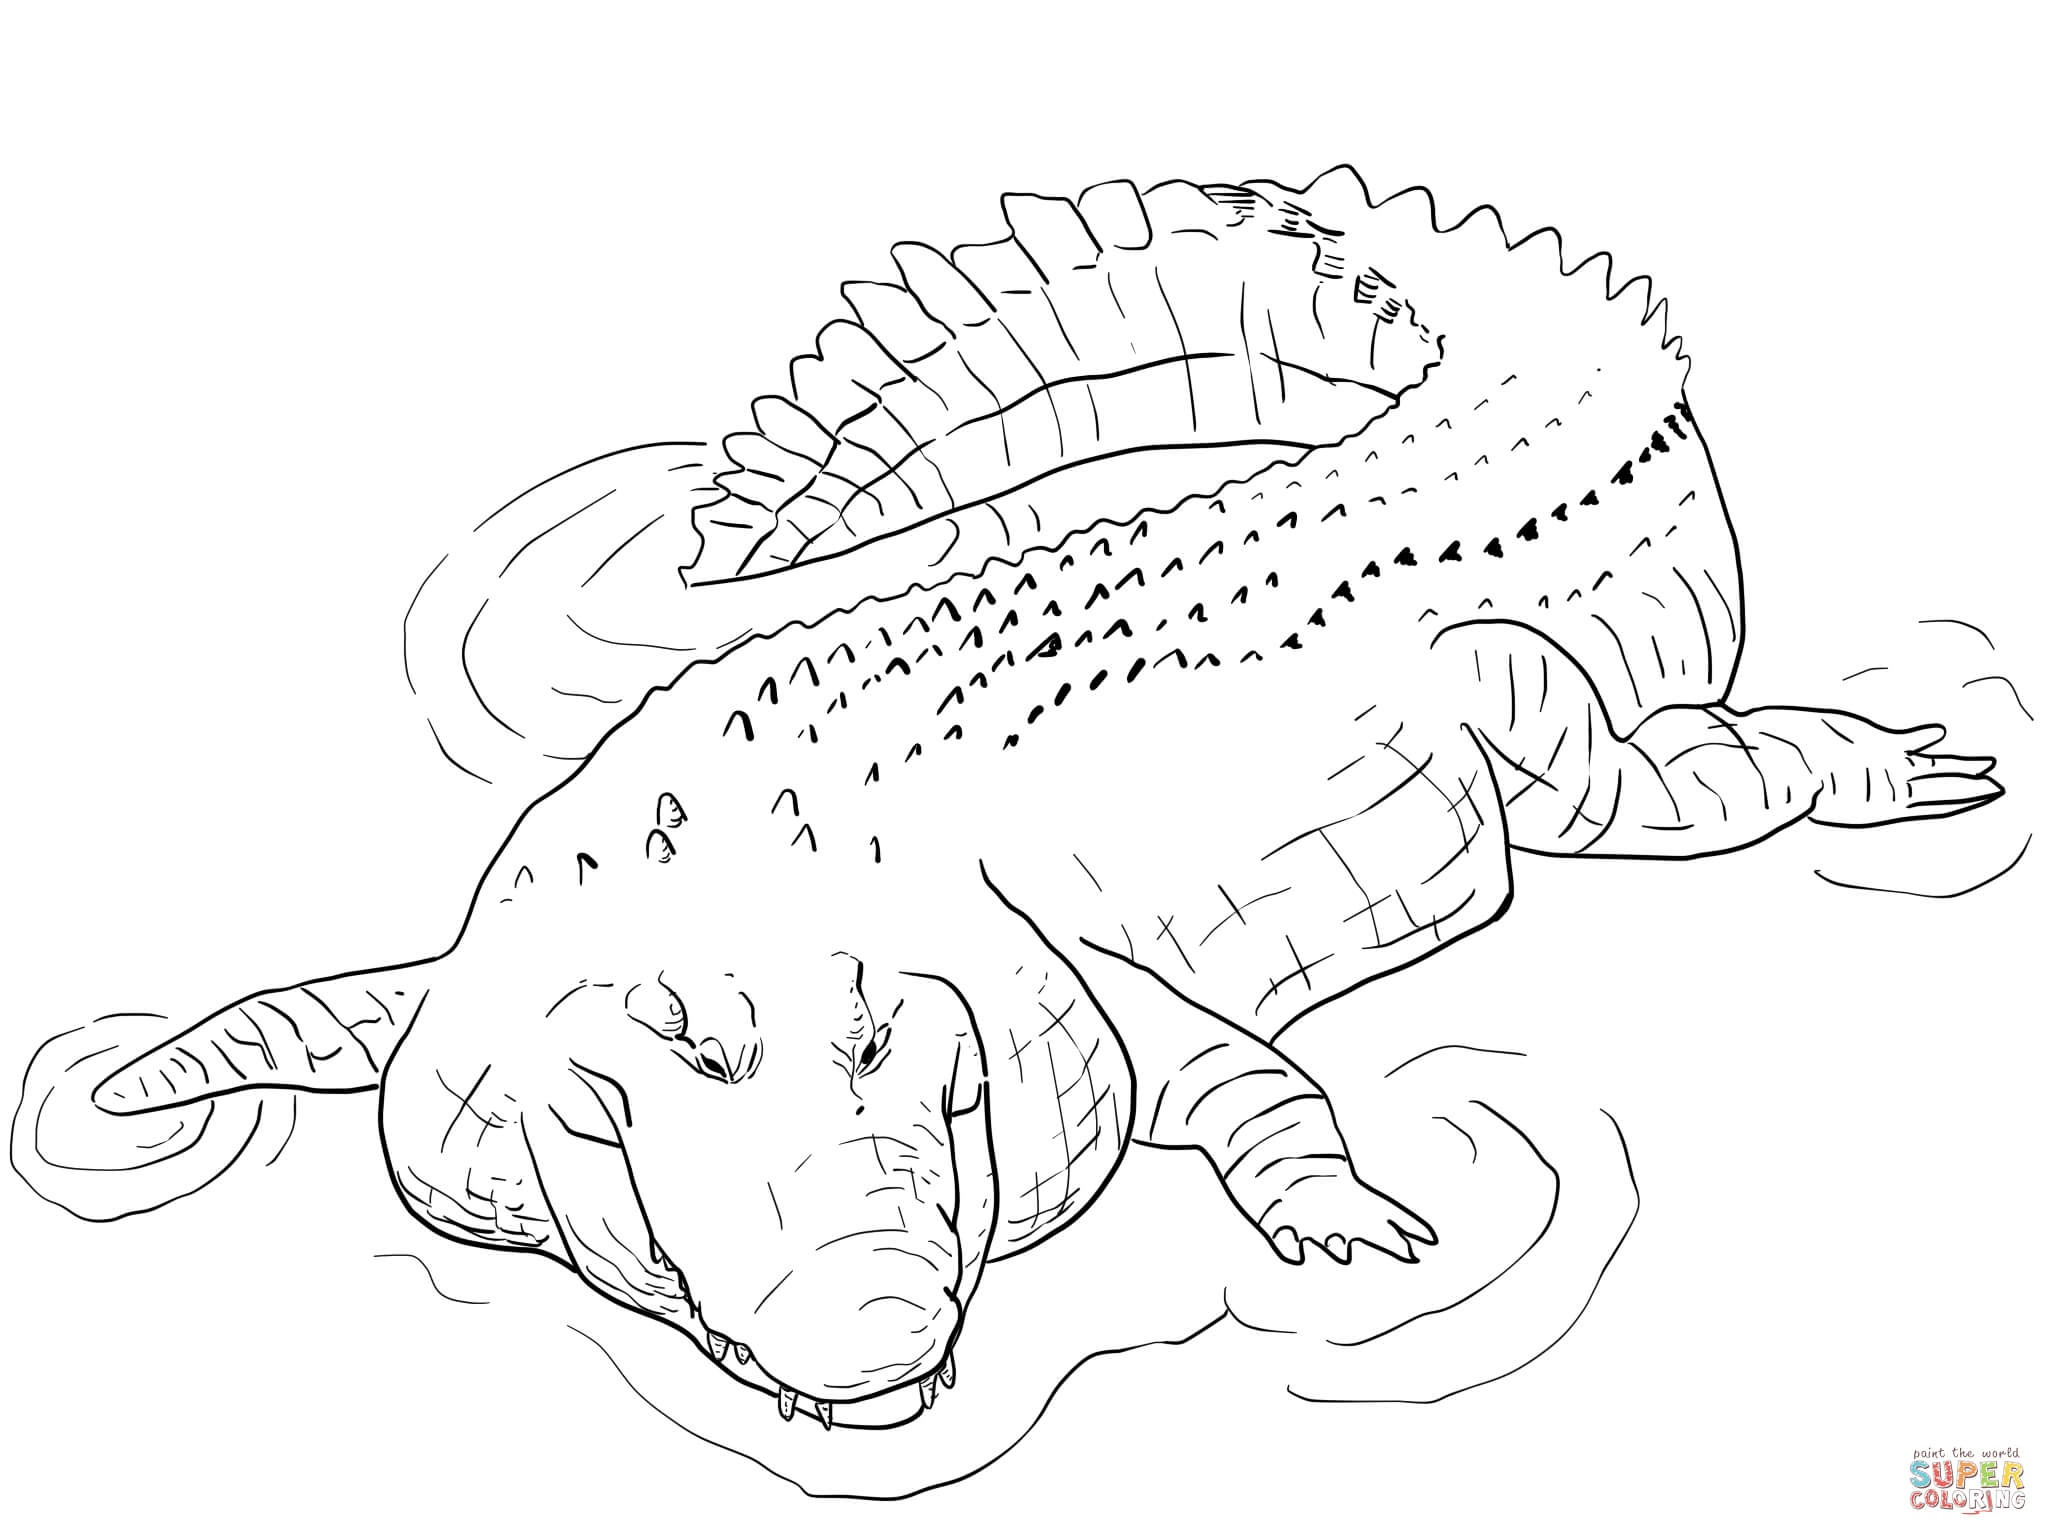 Crocodile Coloring Pages | Free Coloring Pages - Free Printable Pictures Of Crocodiles